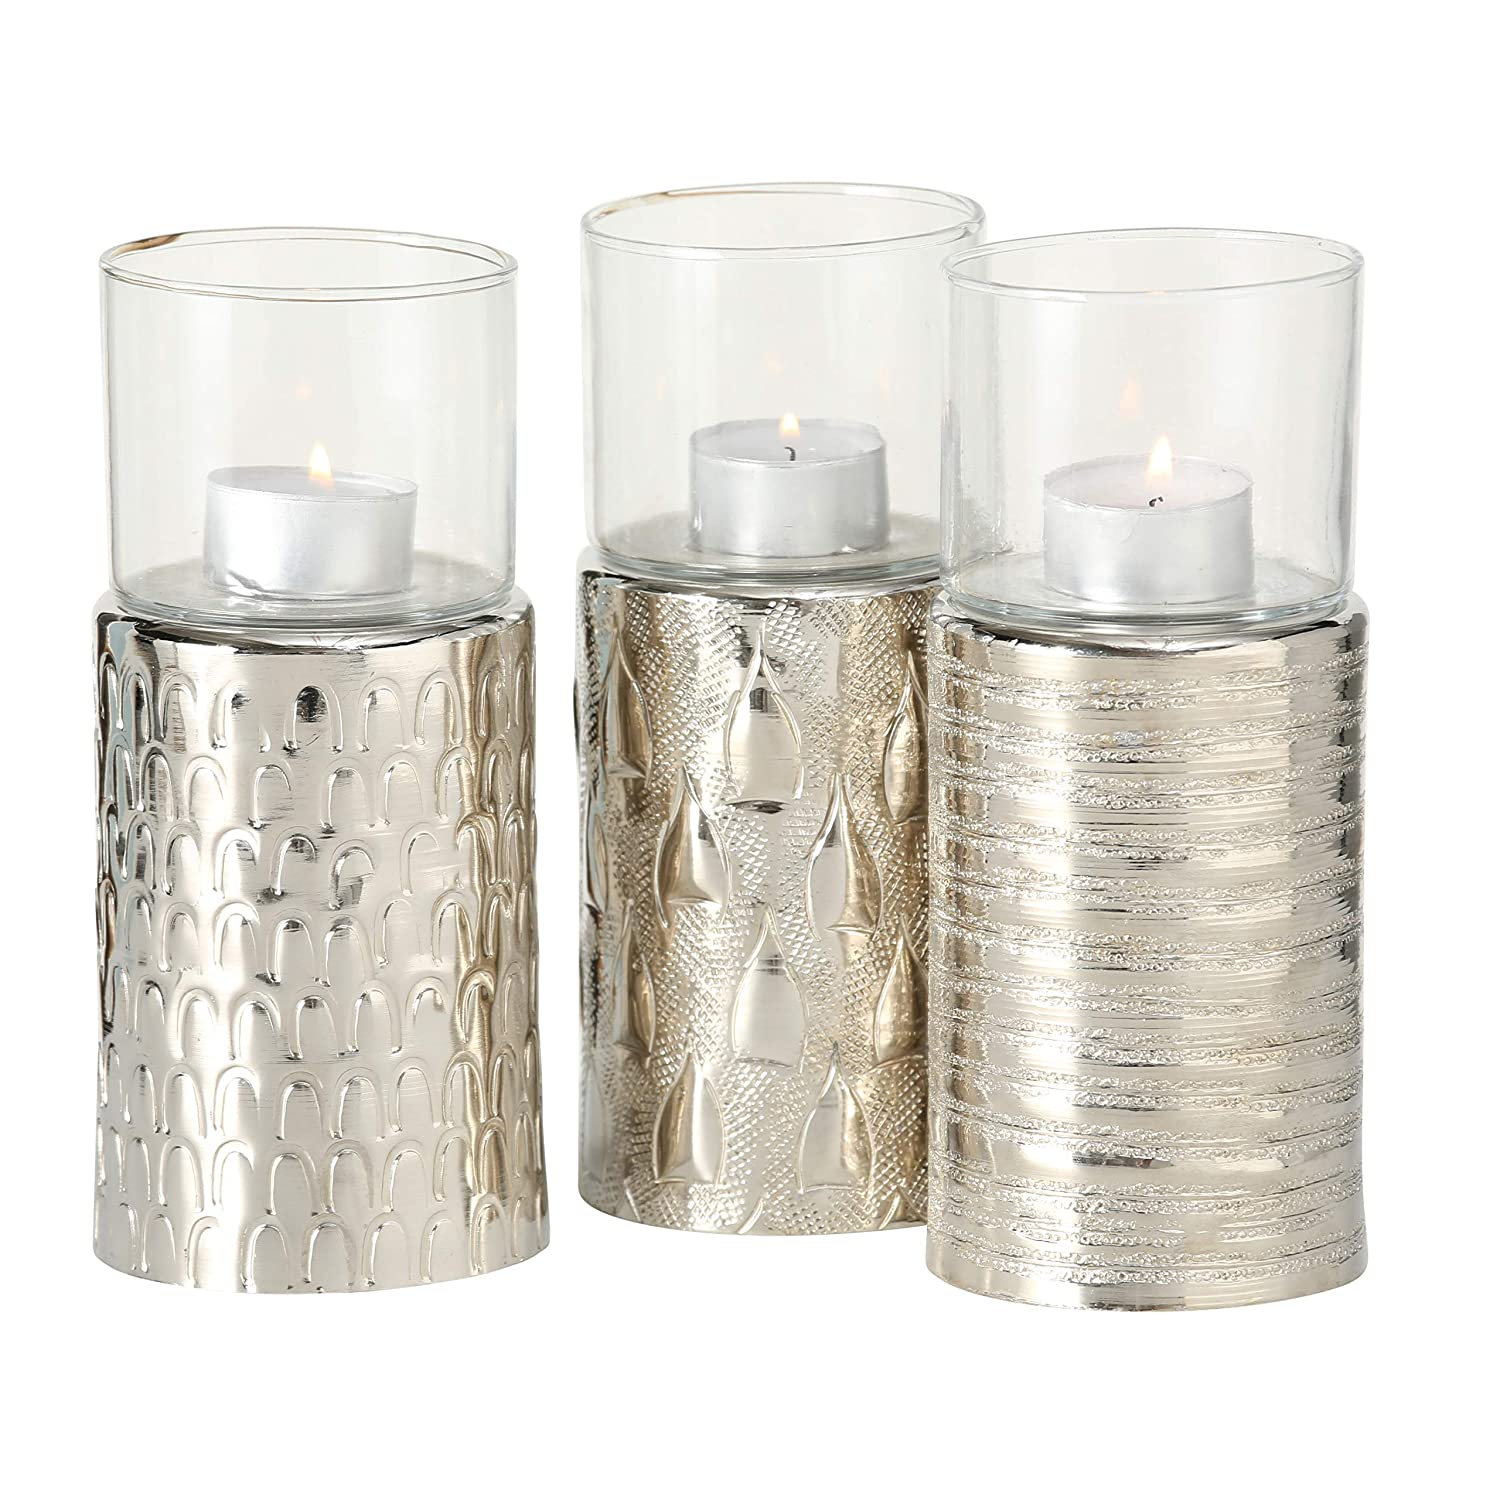 Cast Silver Aluminum WHW Whole House Worlds 3 Piece Shimmer Votive Candle Holder Set Finishes Handcrafted Glass Candle Sleeve Included 3 Curated Patterns Distinct Textured 7 1//2 Inches Tall